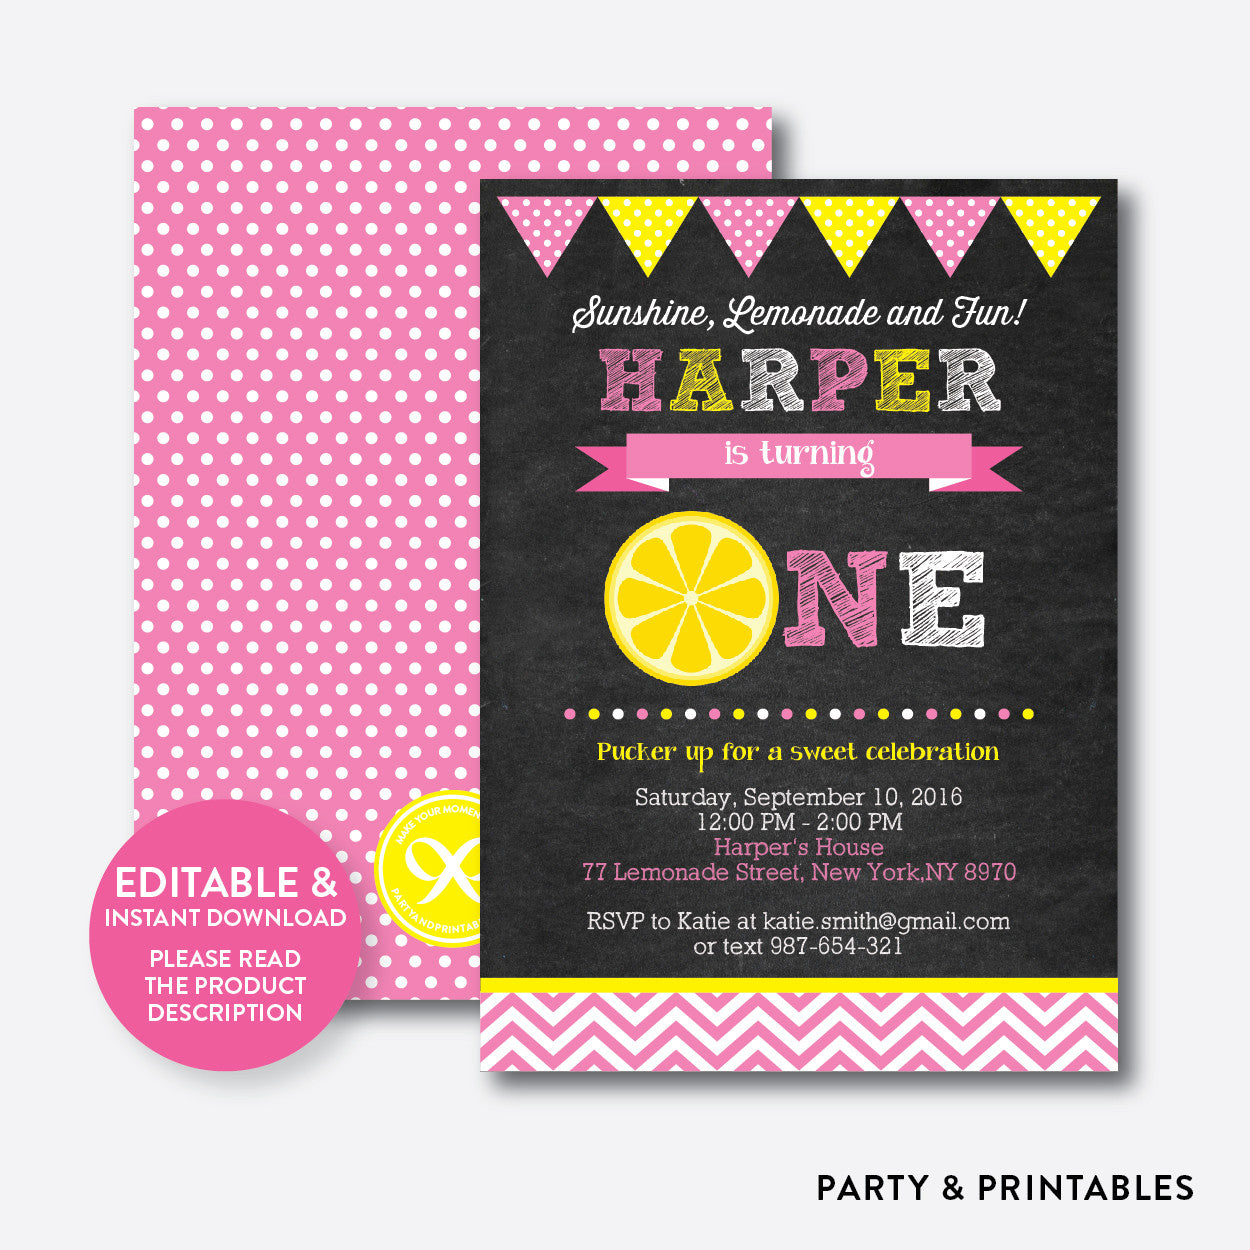 Pink Lemonade Chalkboard 1st Birthday Invitation / Editable / Instant Download (CKB.63), invitation - Party and Printables